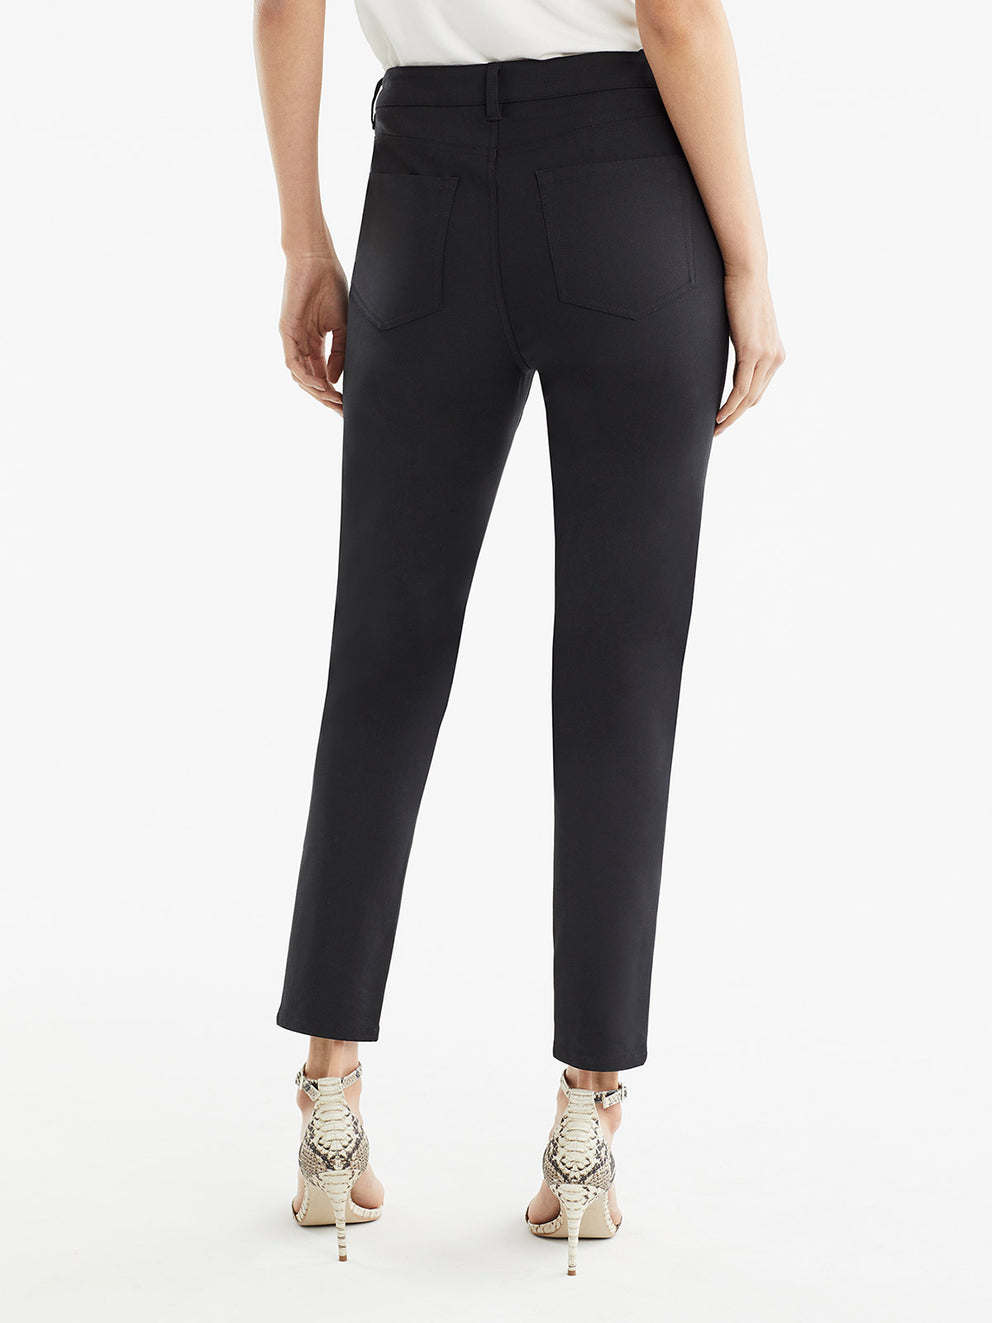 The Jones New York Lexington Skinny Ankle Jeans in color Black - Image Position 3